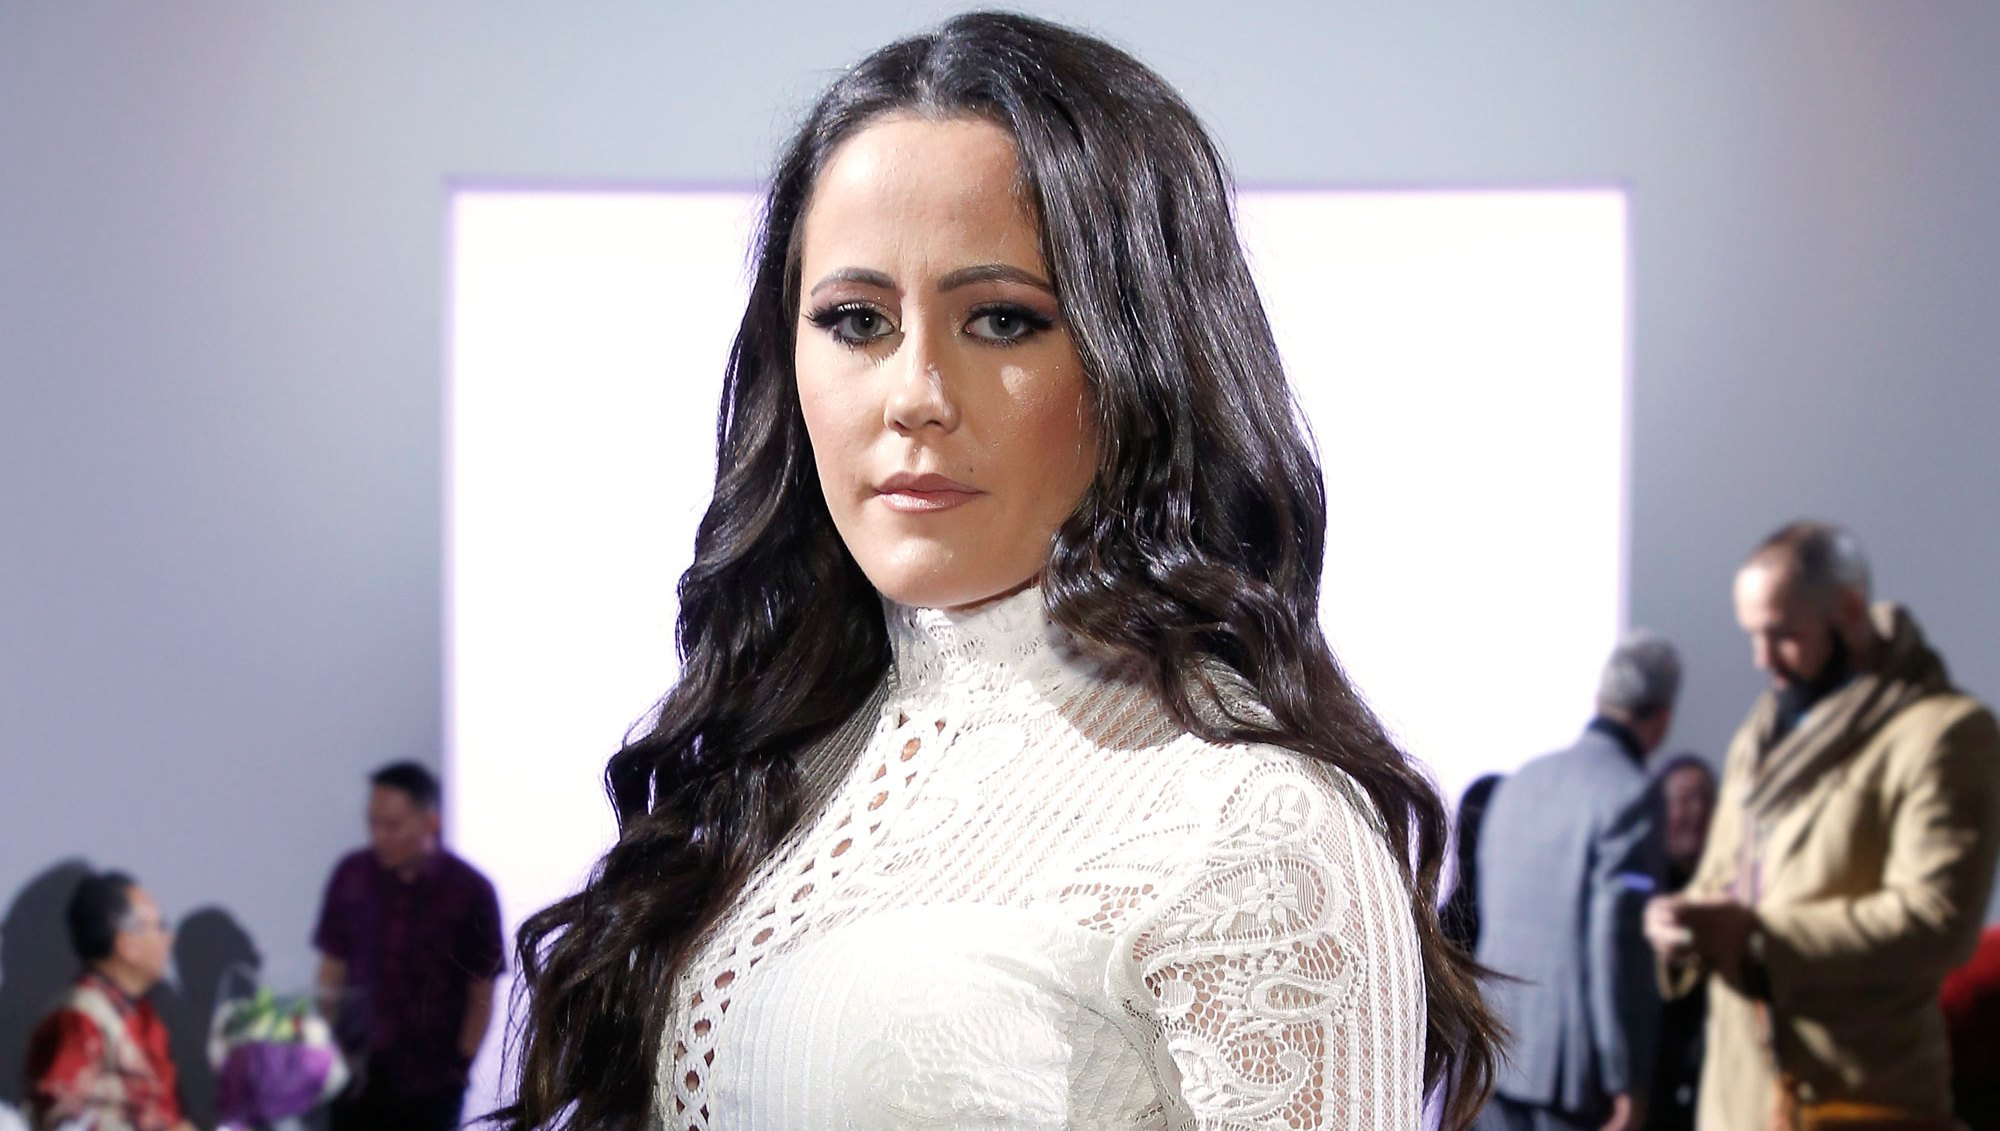 Teen Mom 2's Jenelle Evans Had an Ovary Removed